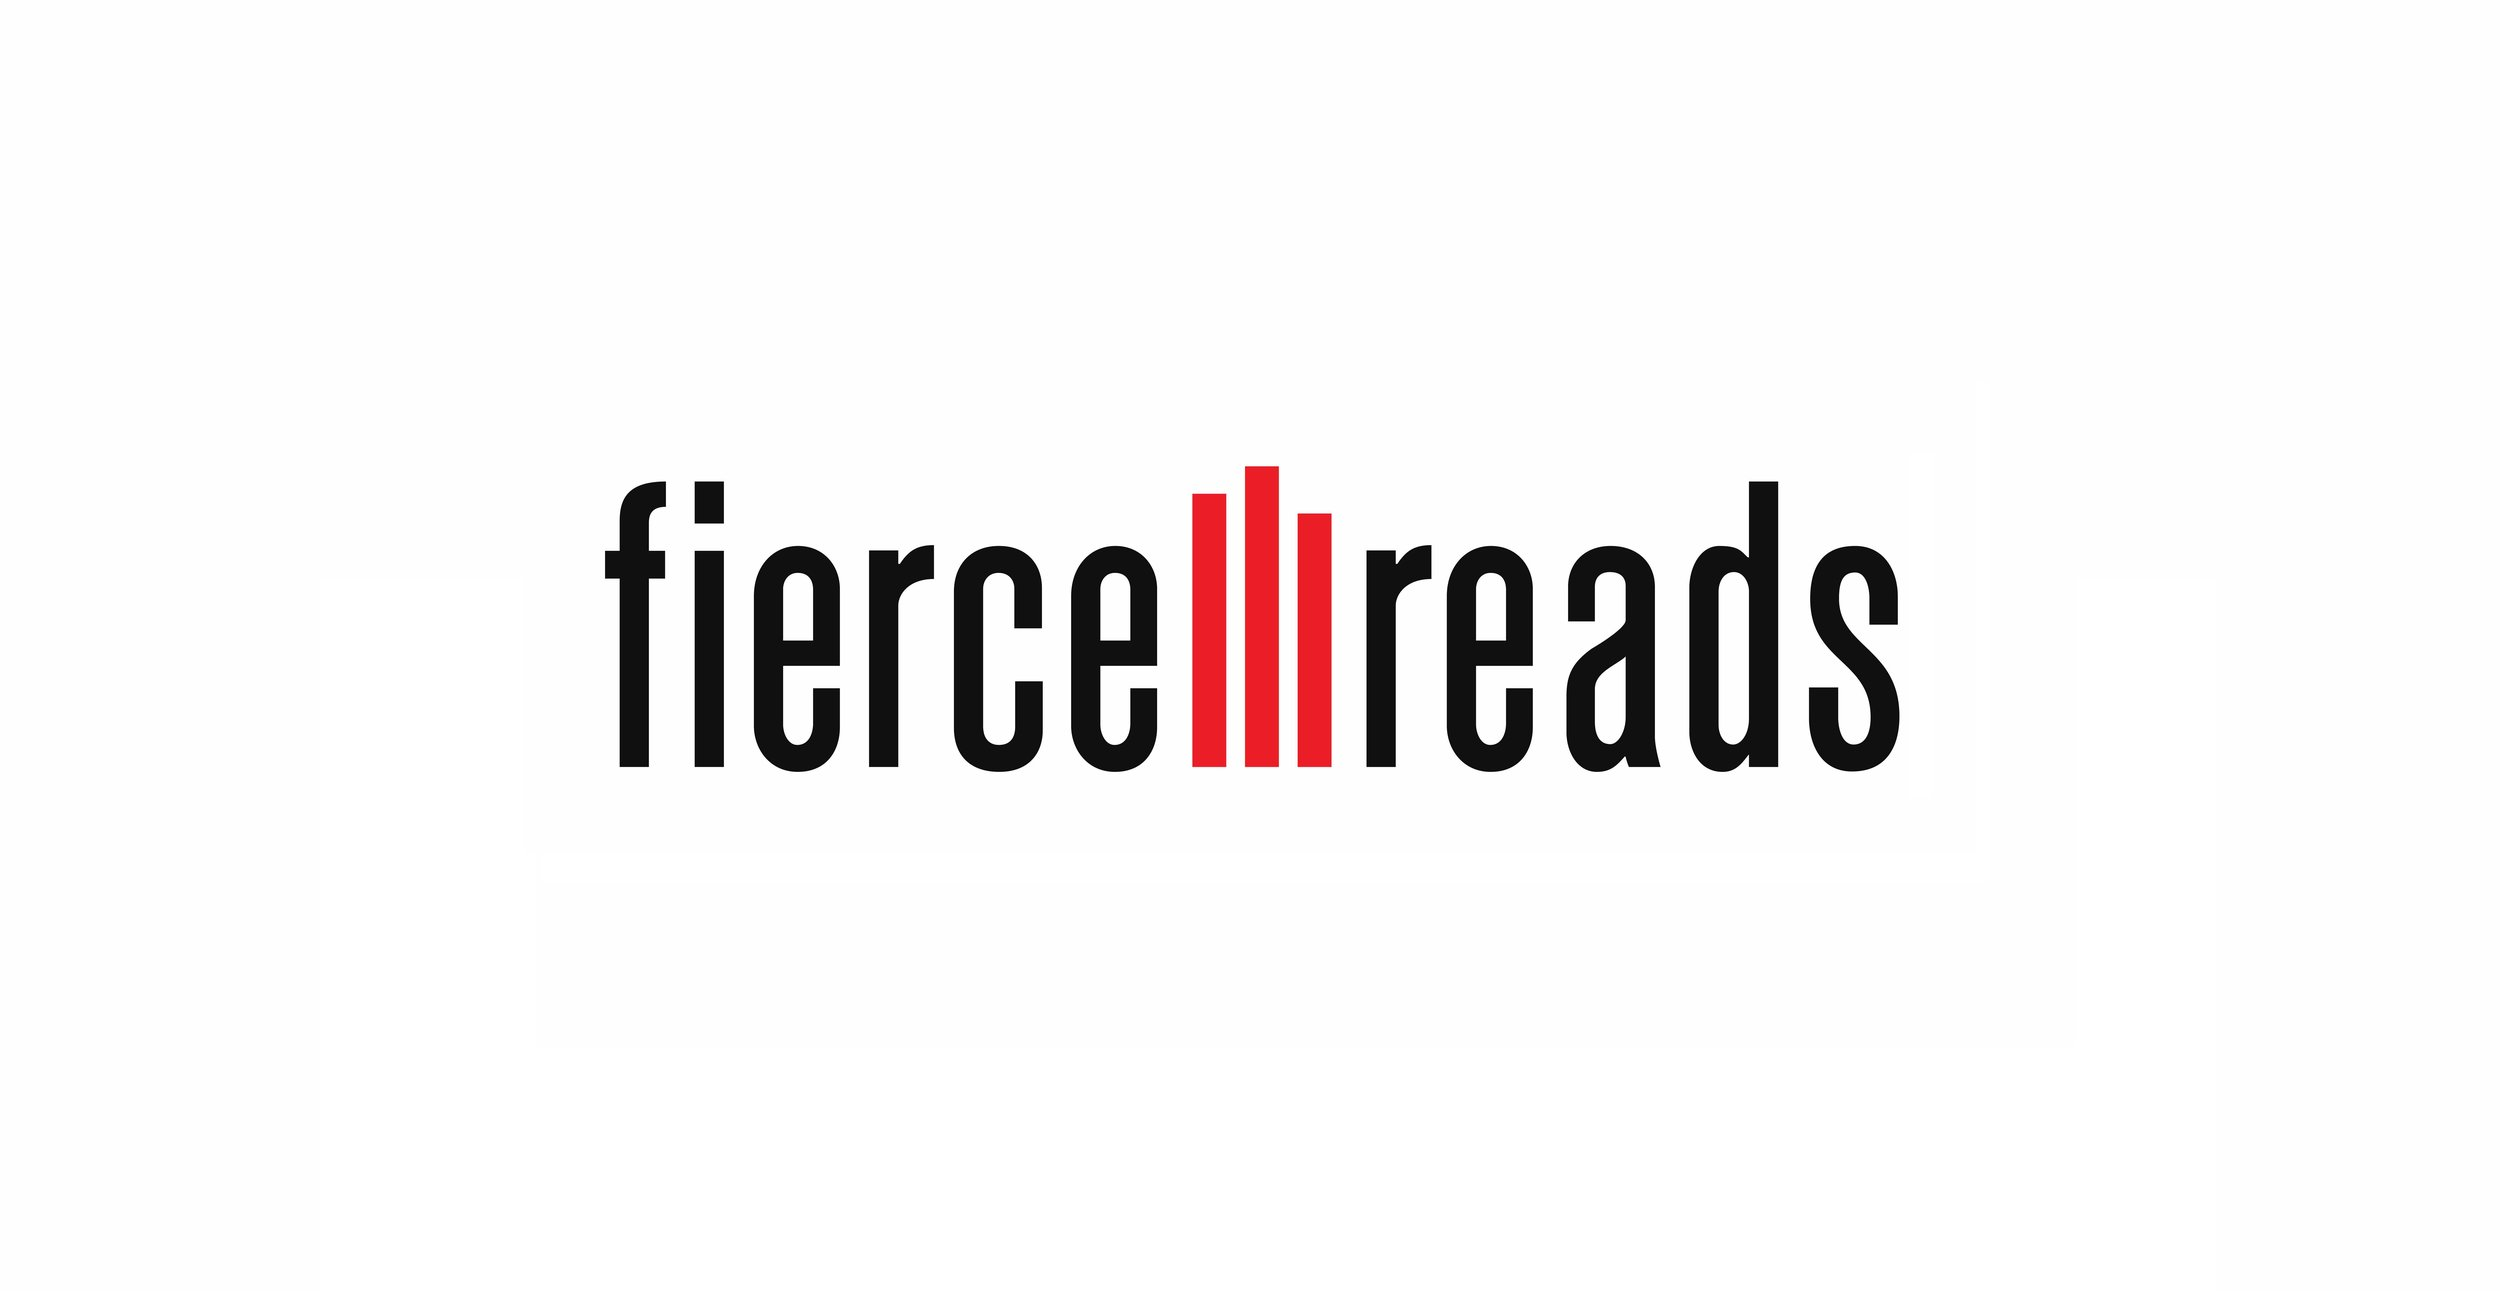 Fierce Reads & First Second Books San Diego Comic-Con Signings, Giveaways |  San Diego Comic-Con Unofficial Blog